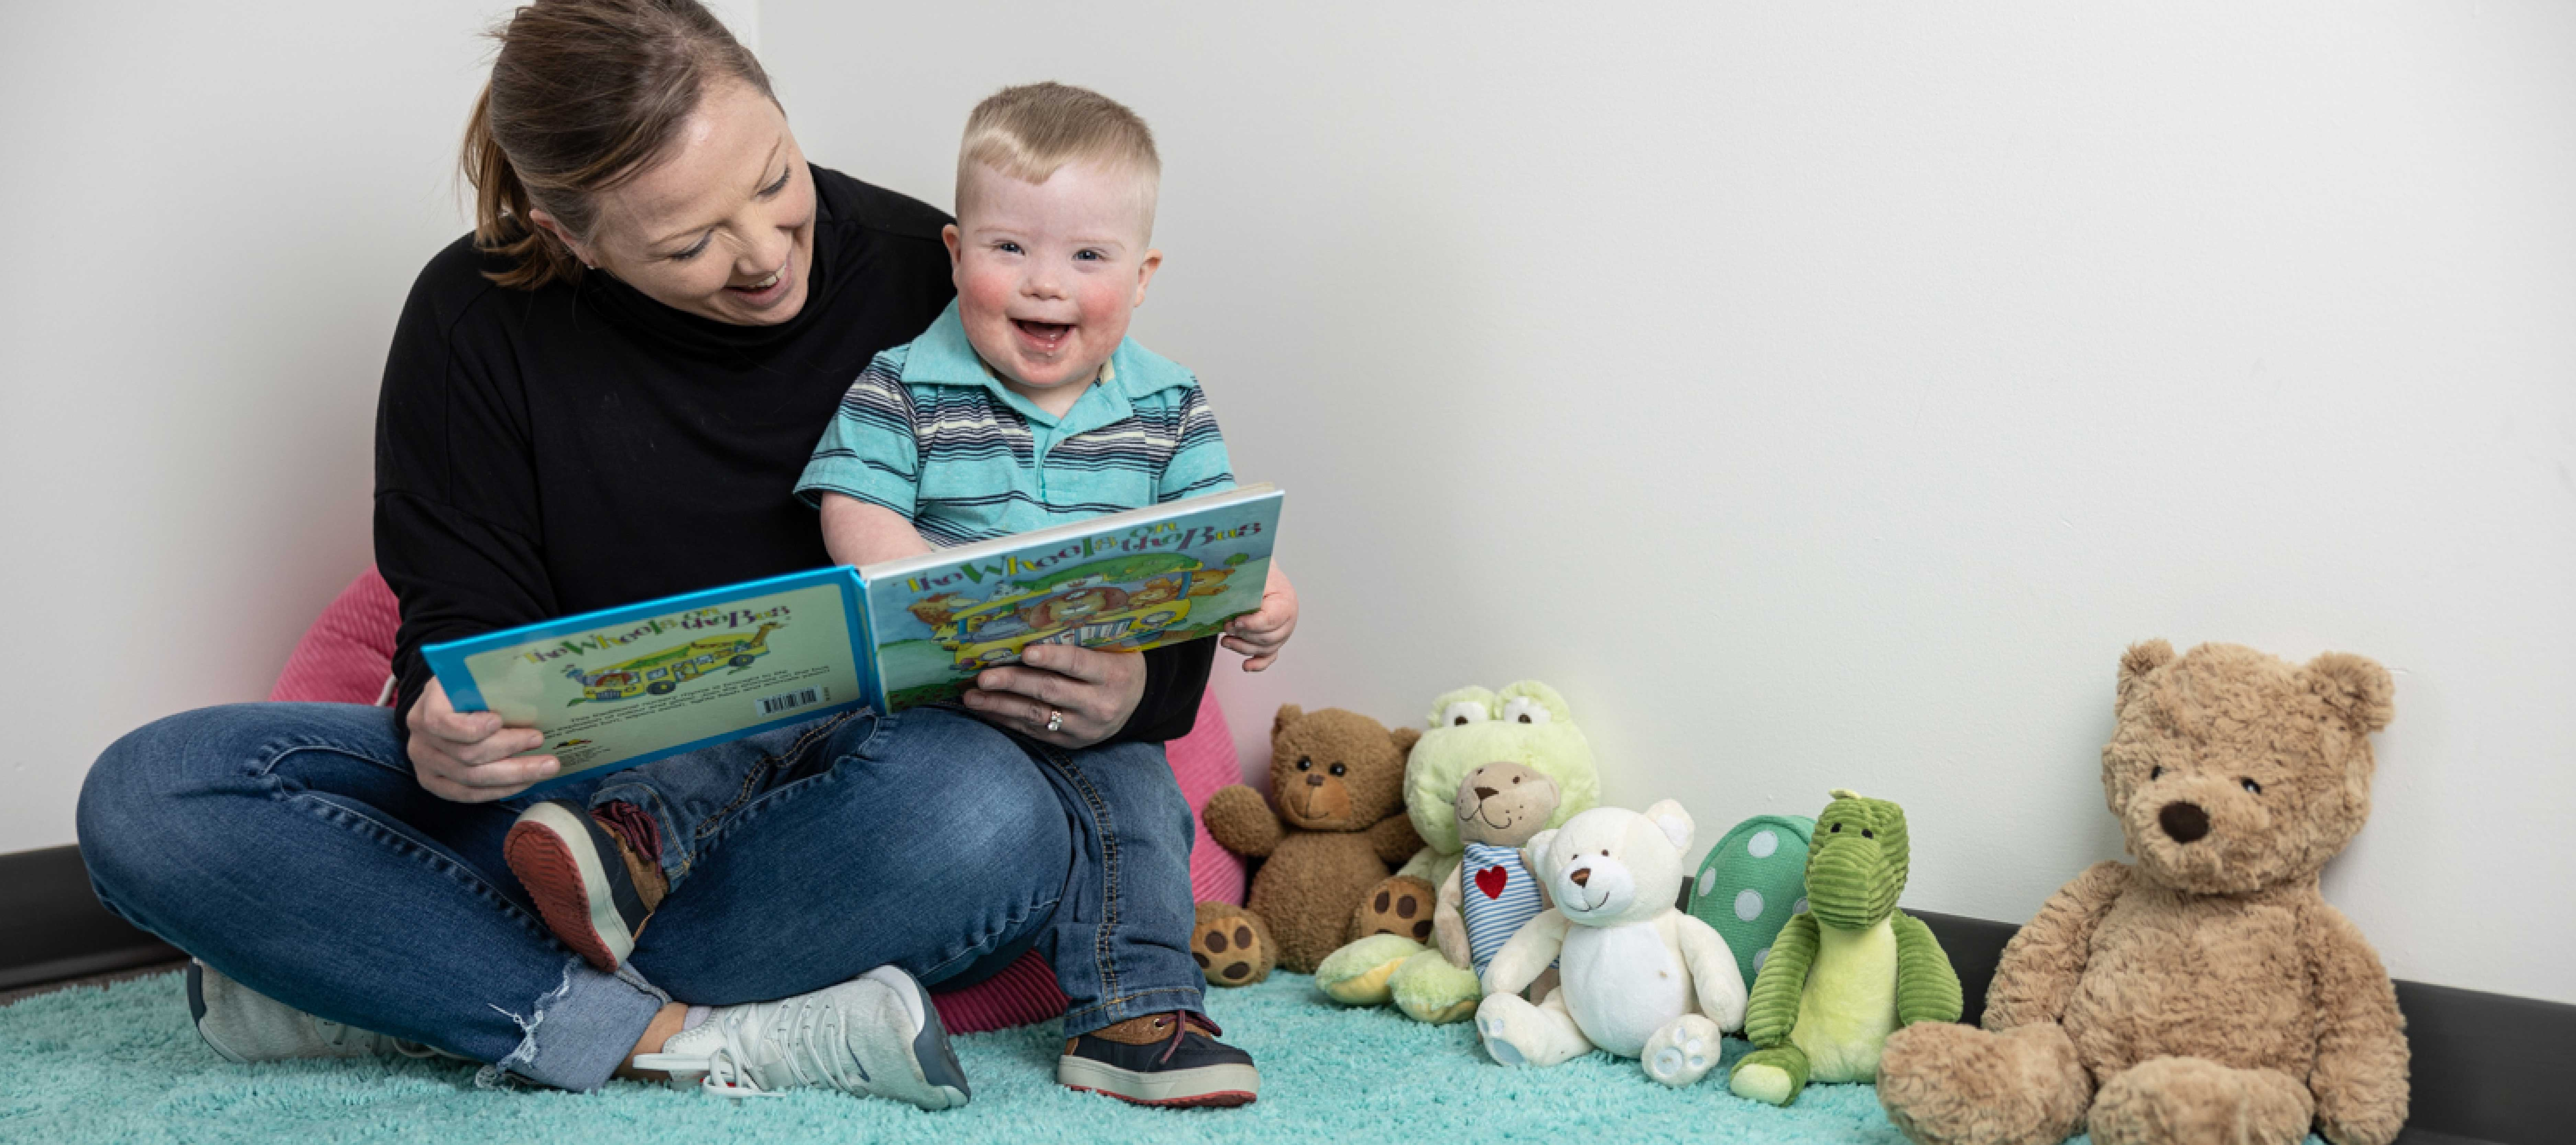 Toddler with Down syndrome on Mom's lap, smiling while she reads